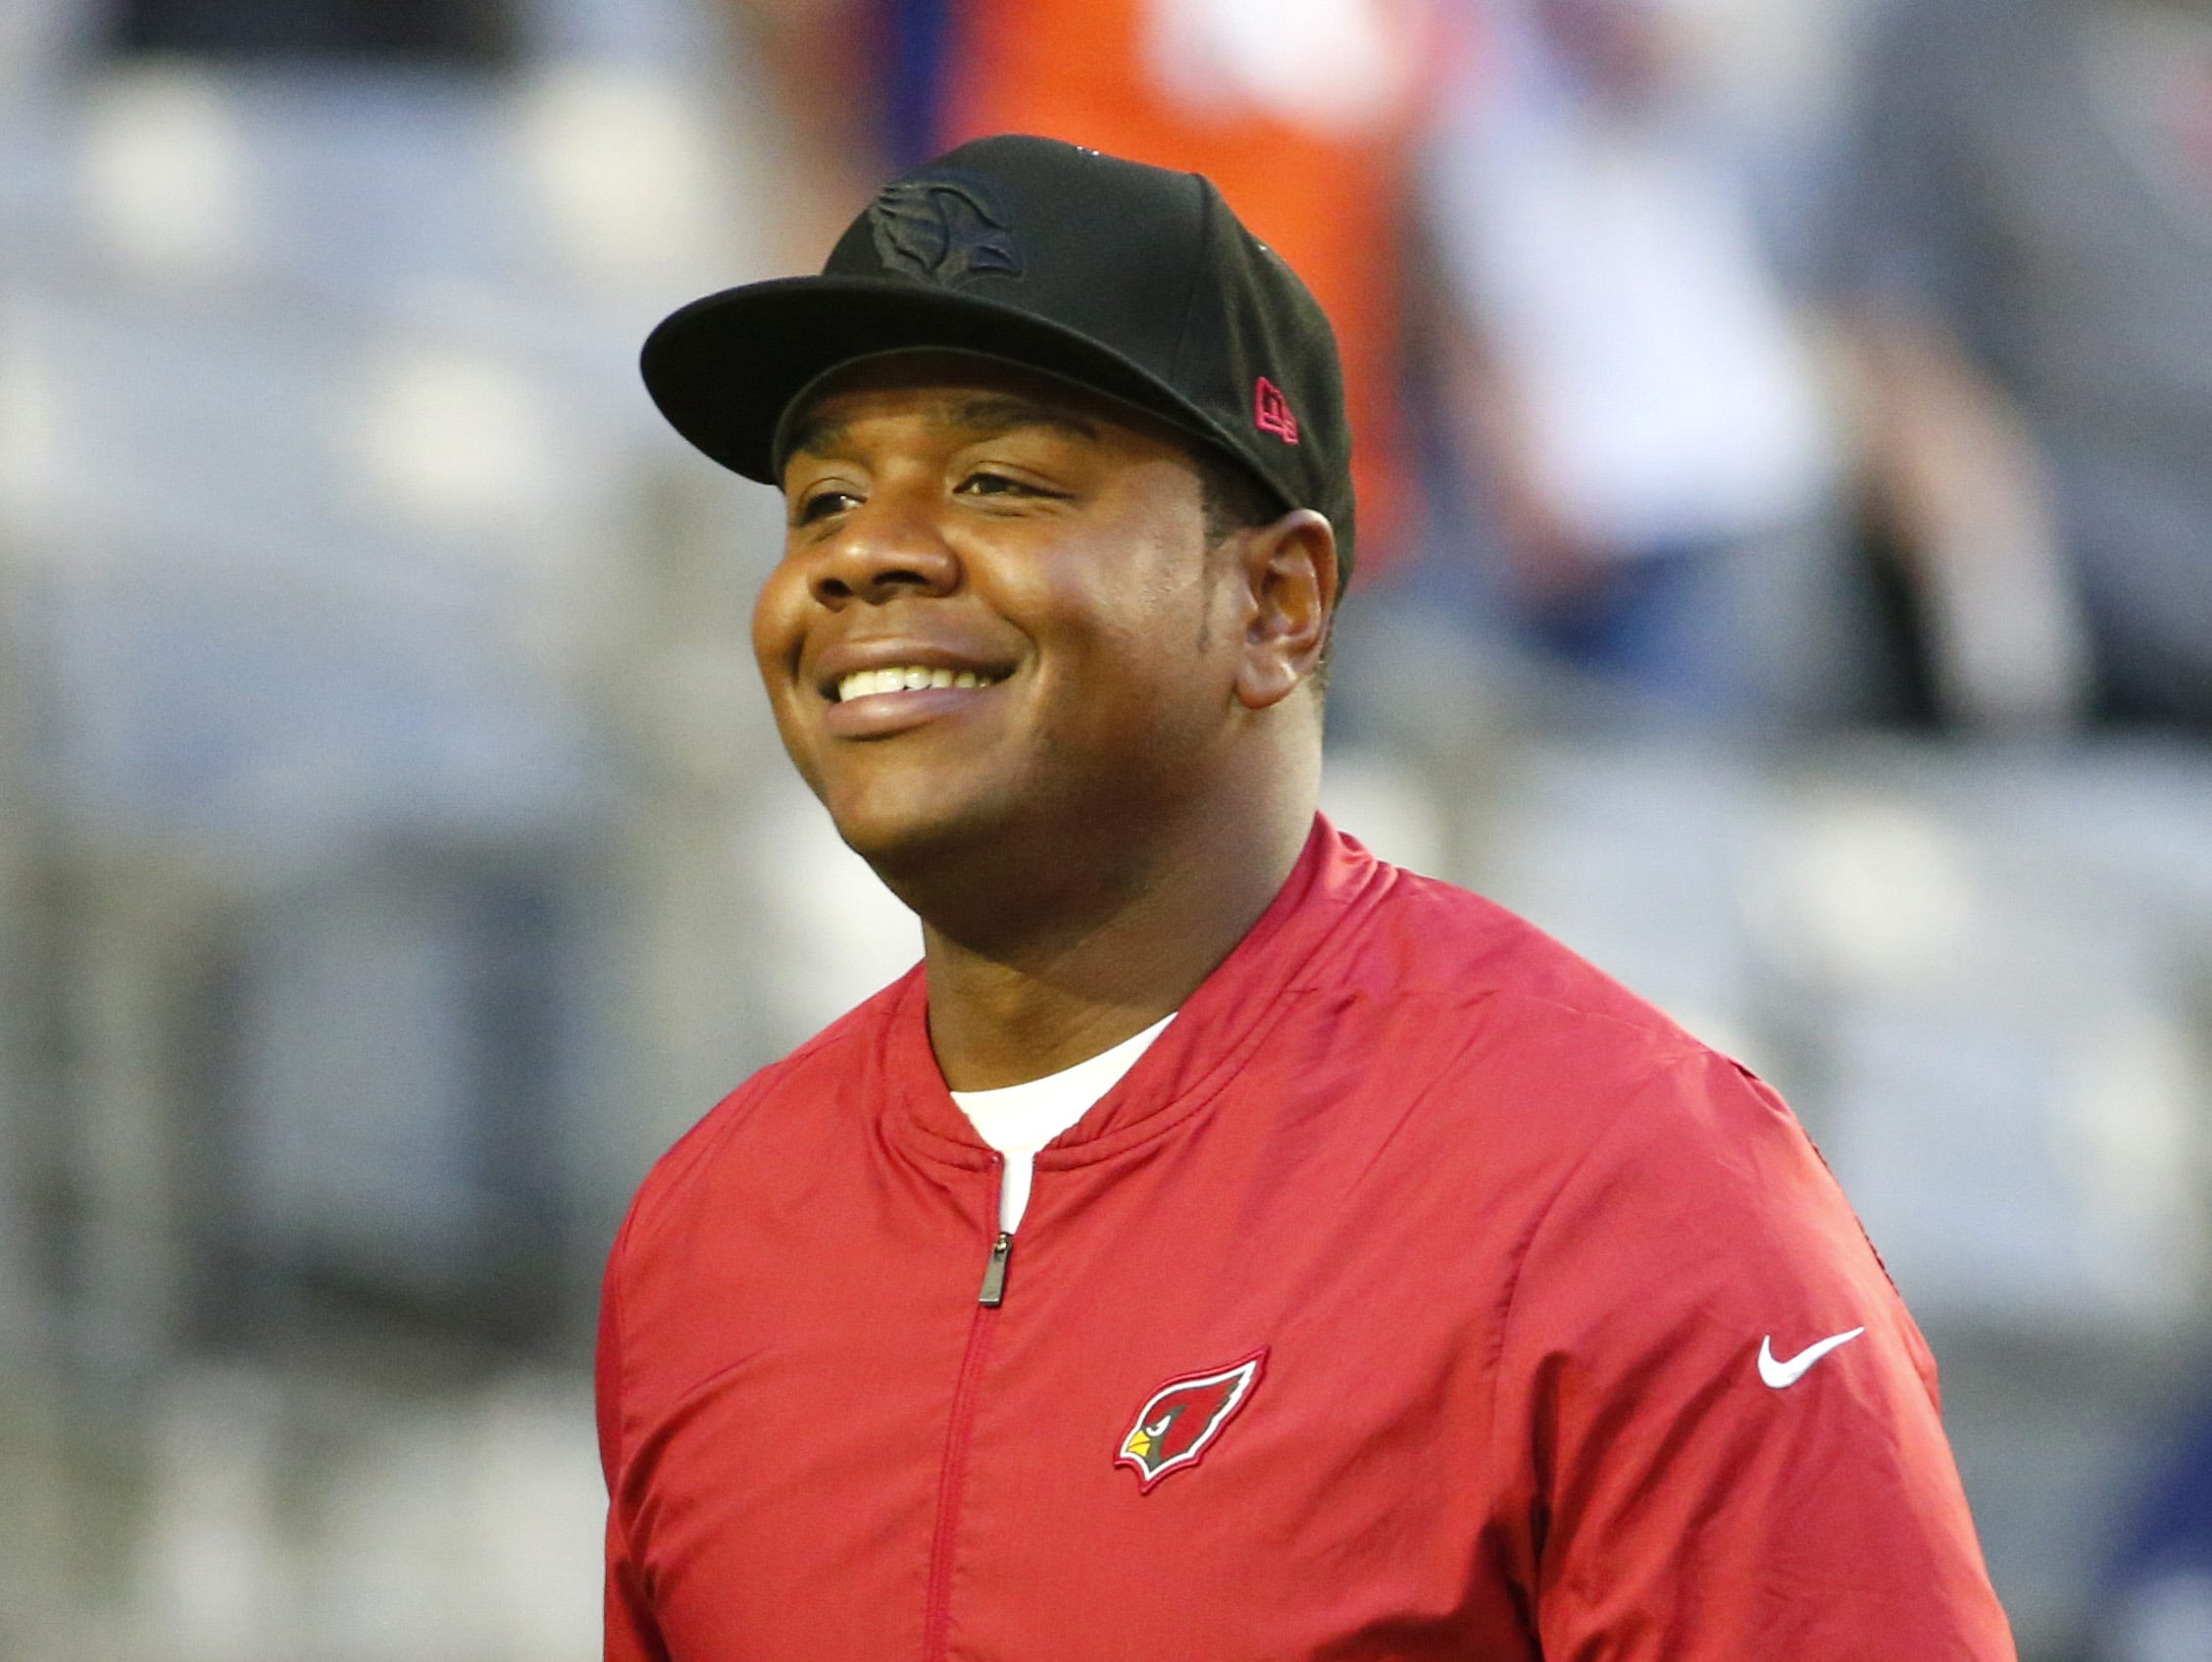 Cardinals quarterback coach Byron Leftwich takes the field during warm ups at State Farm Stadium in Glendale on October 18, 2018.